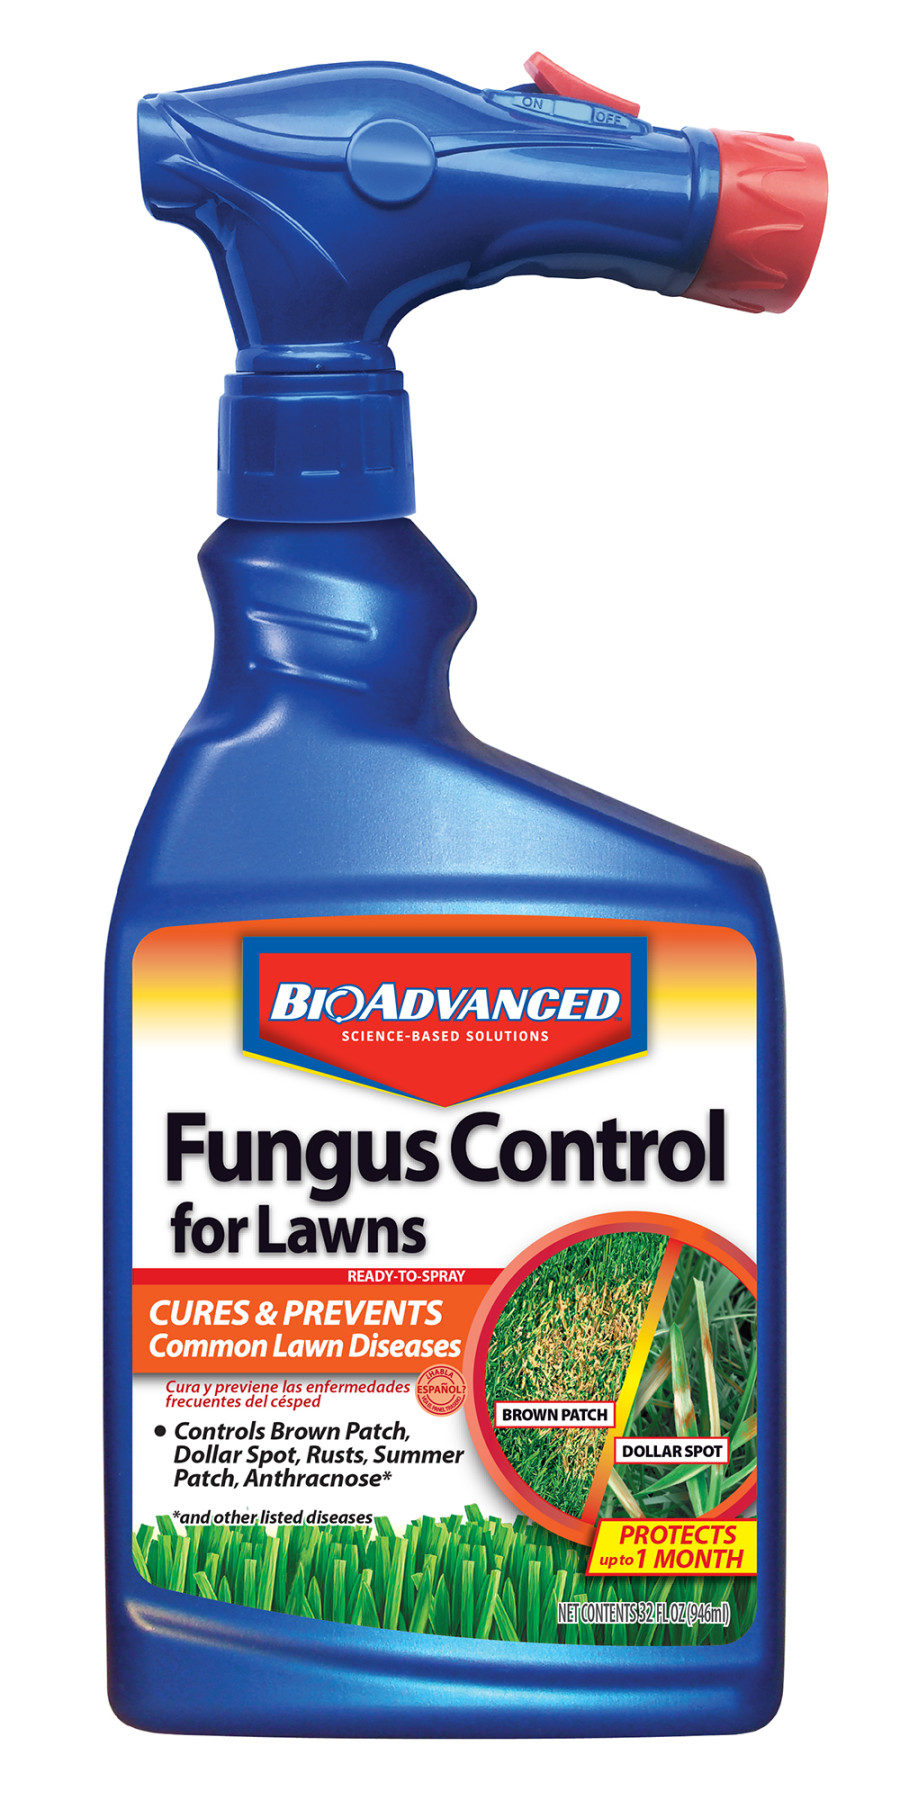 BioAdvanced Fungus Control For Lawns Ready To Spray 8ea/32 fl oz